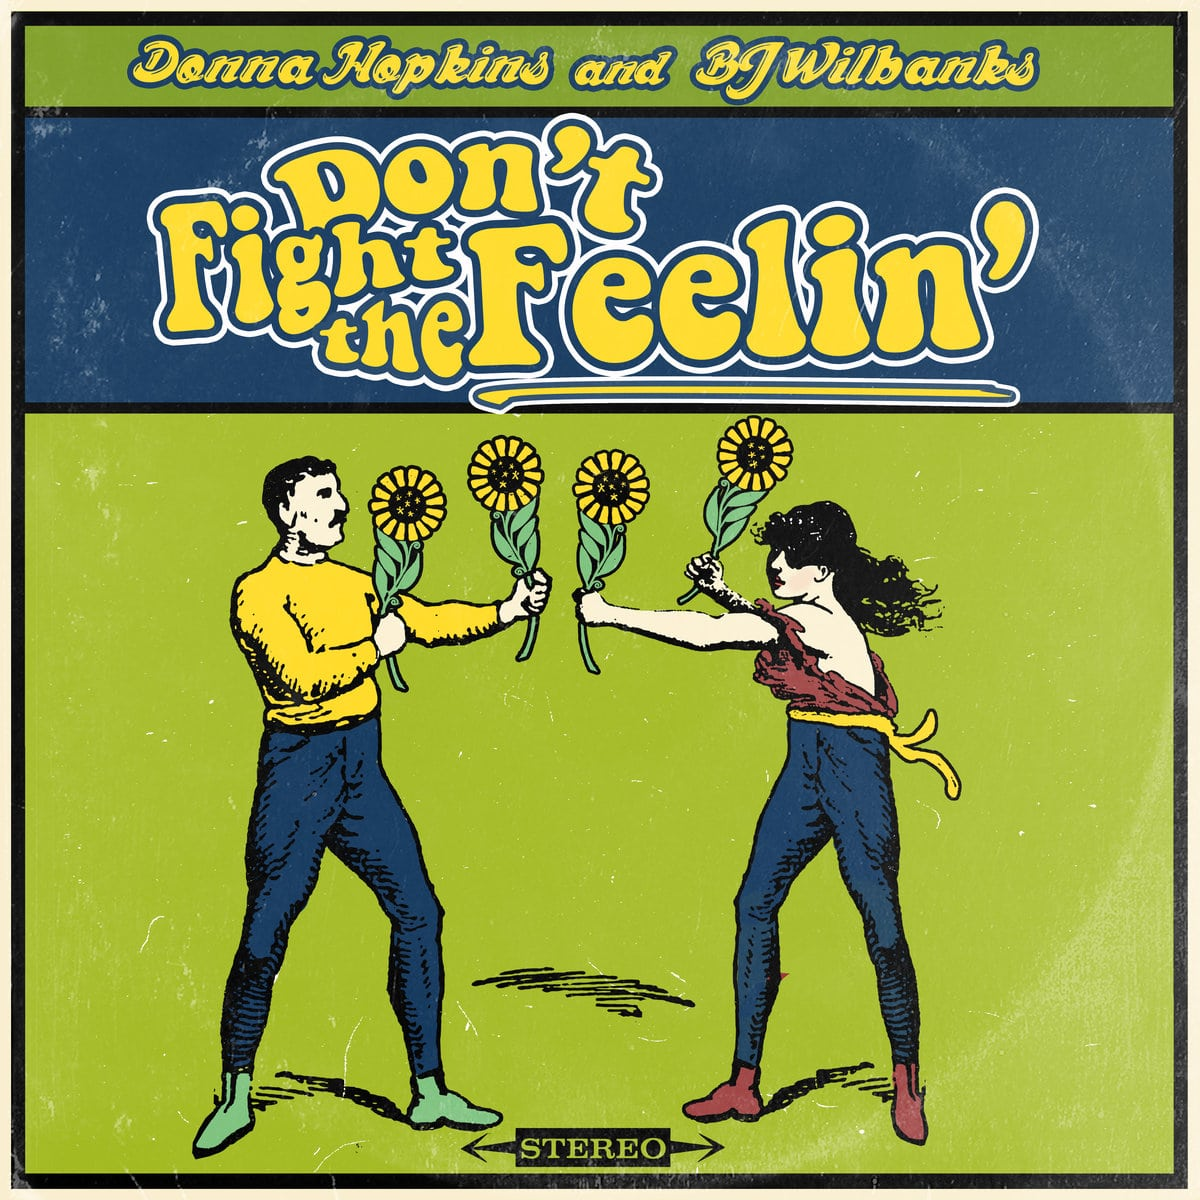 BJ Wilbanks - Don't Fight the Feelin'